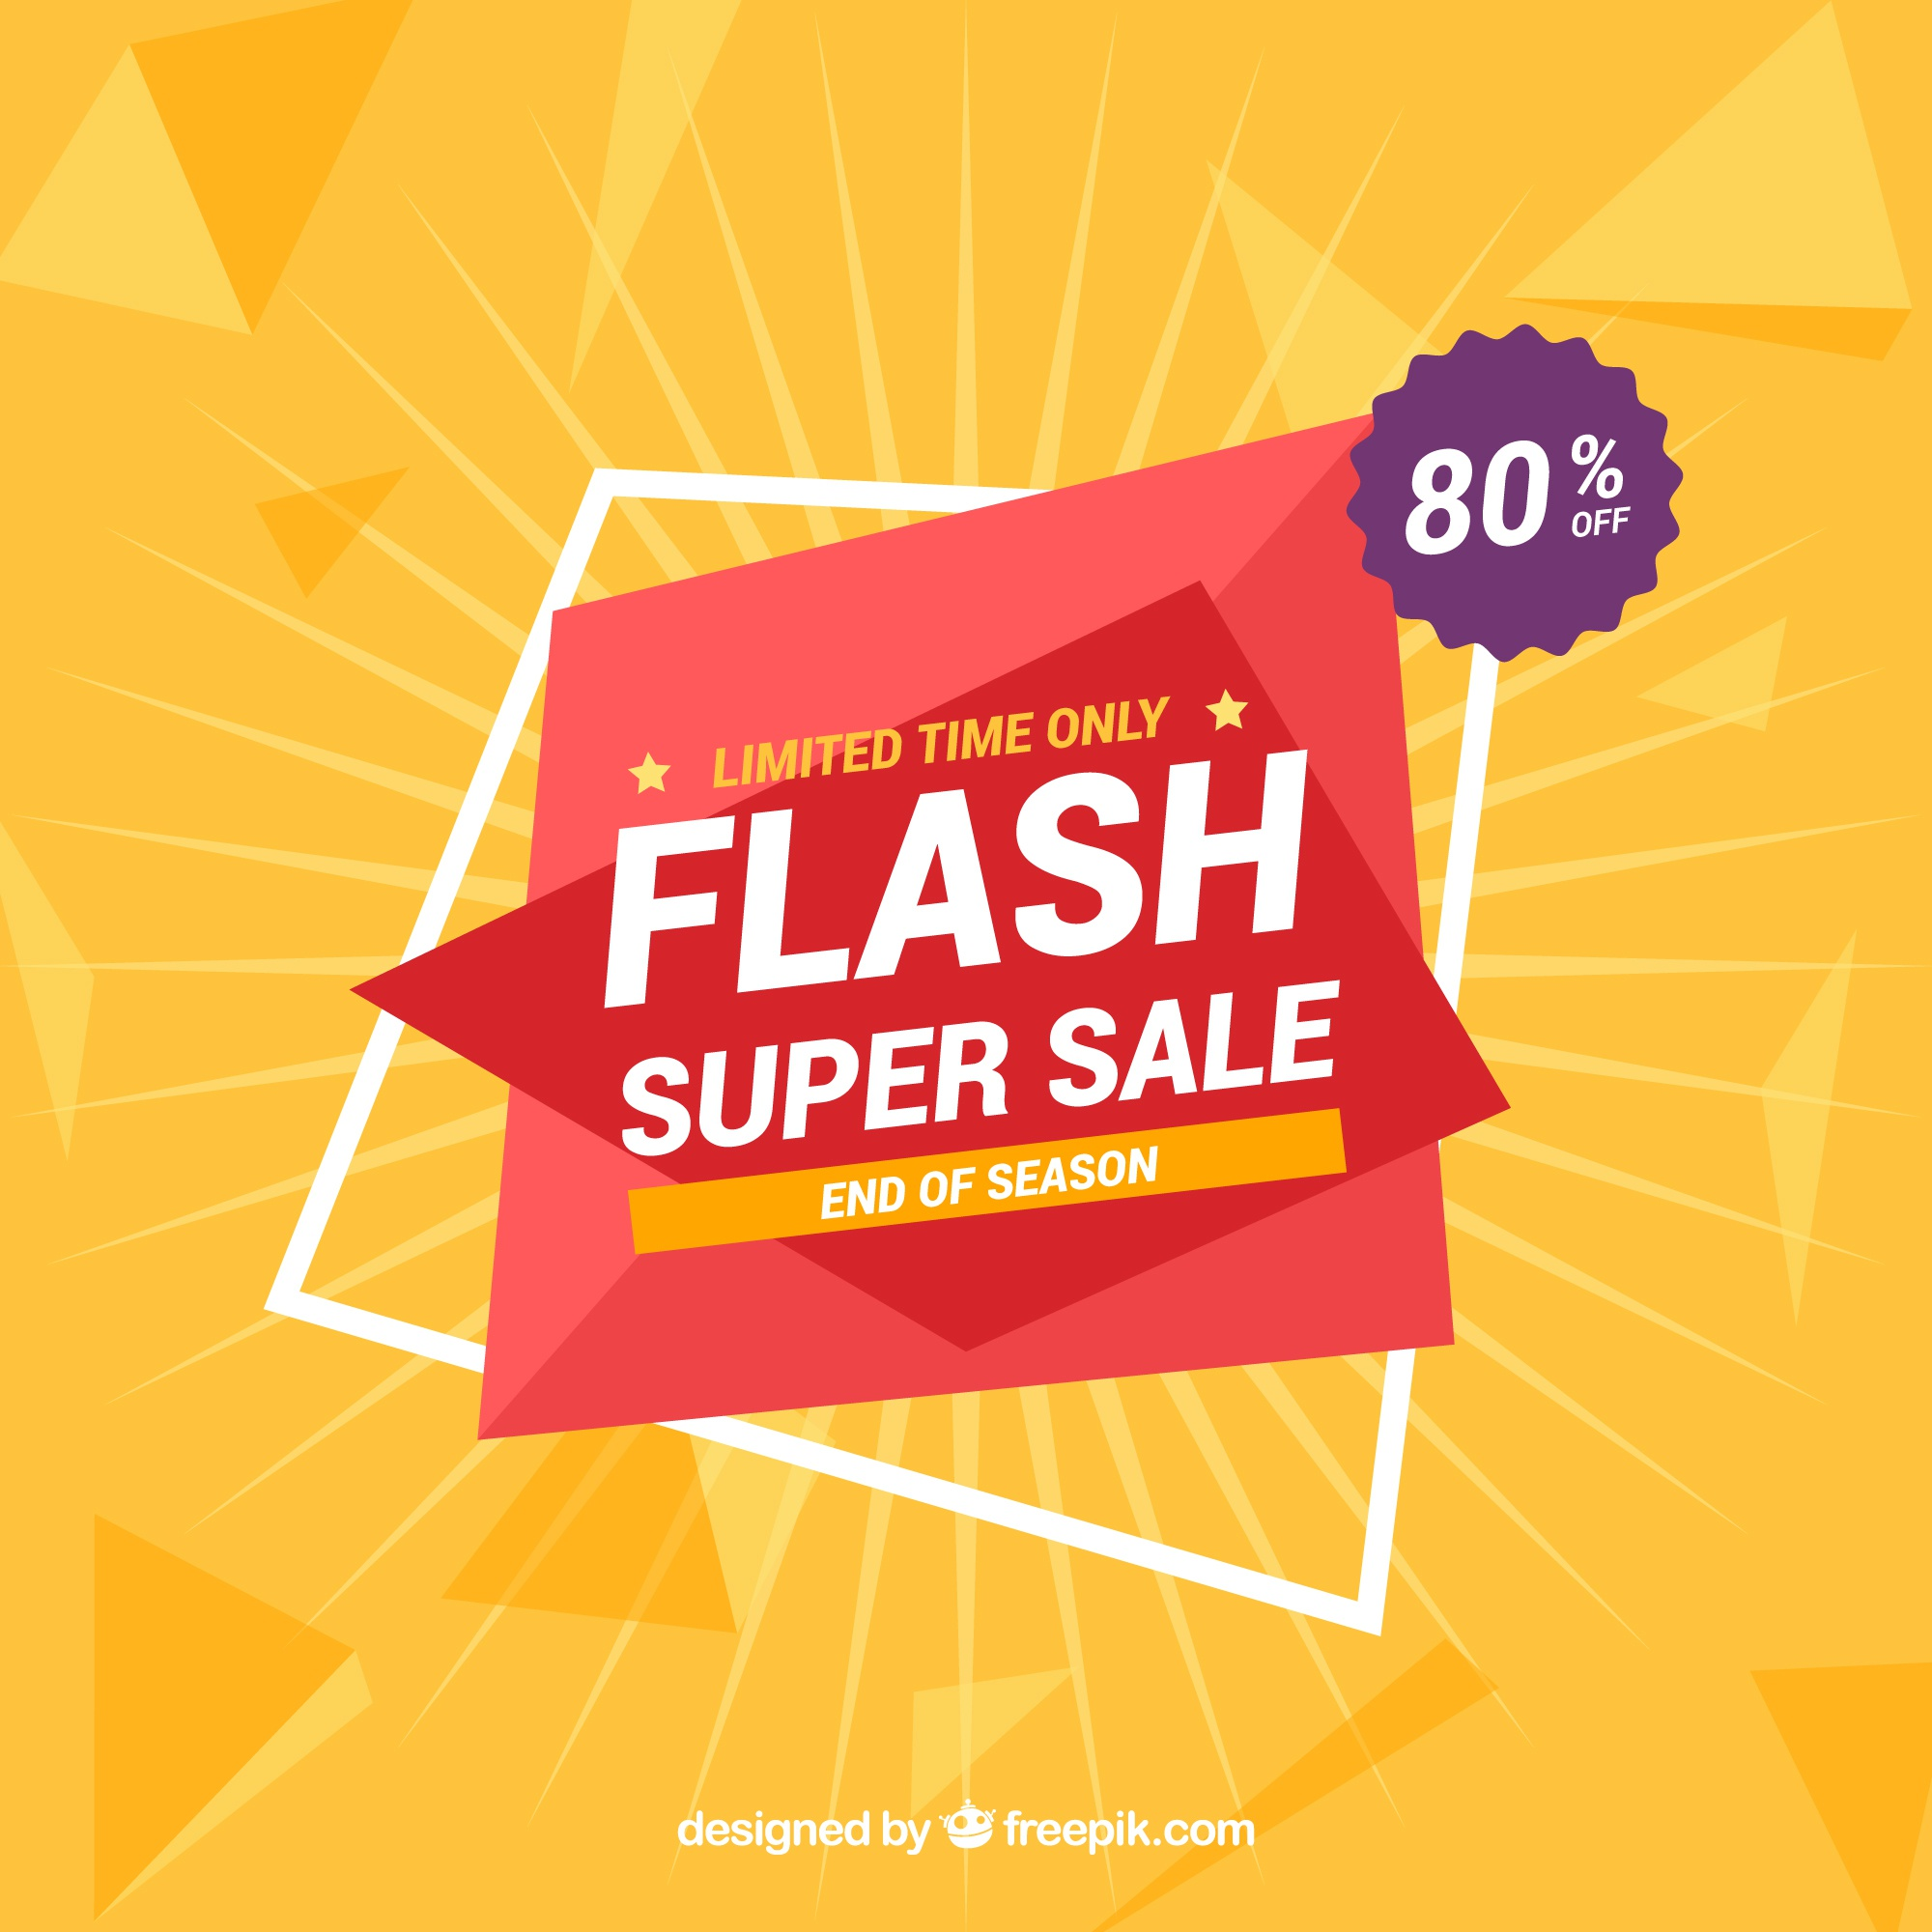 Flash sale background with gradient style